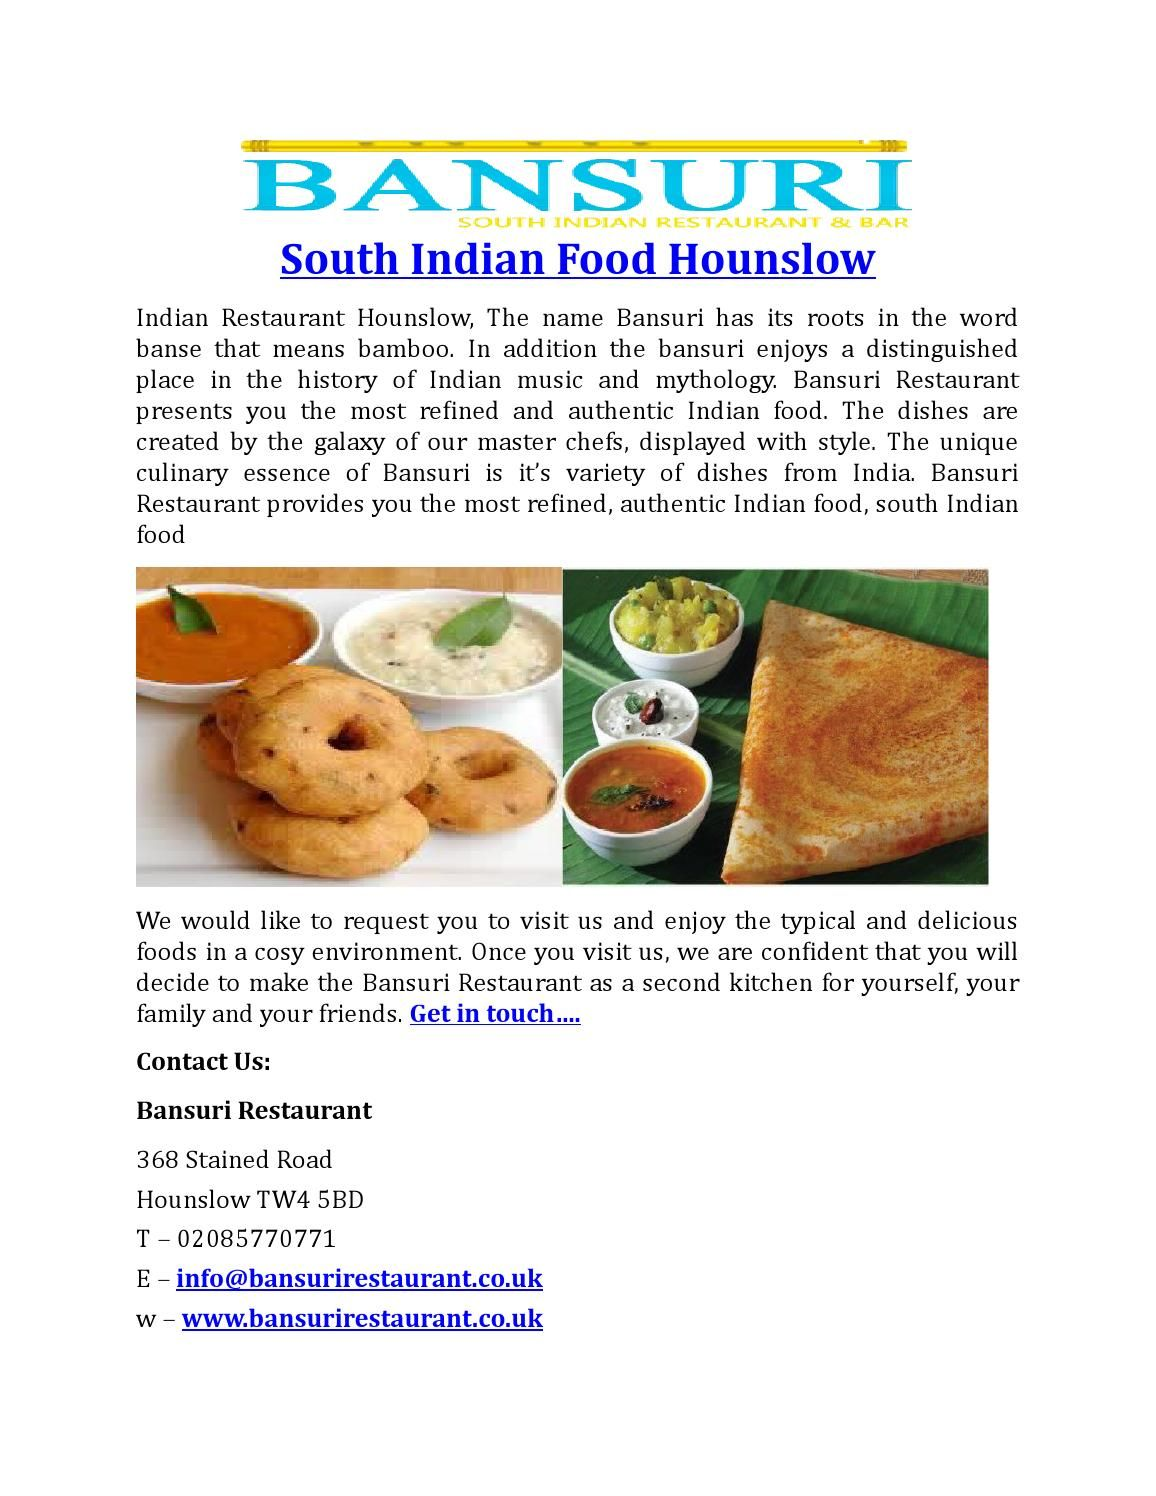 South Indian Food HounslowBansurirestaurant  South Indian Food